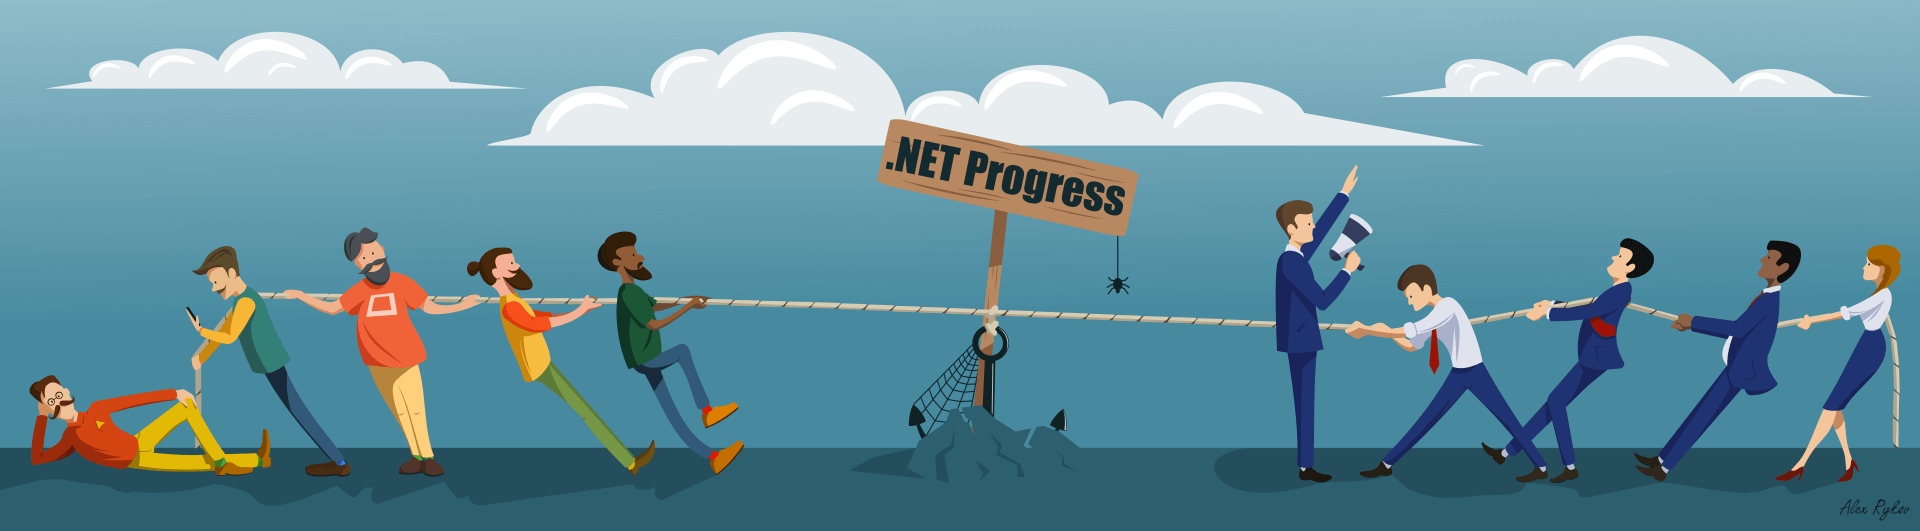 .NET Progress ca. 2012 - 2018